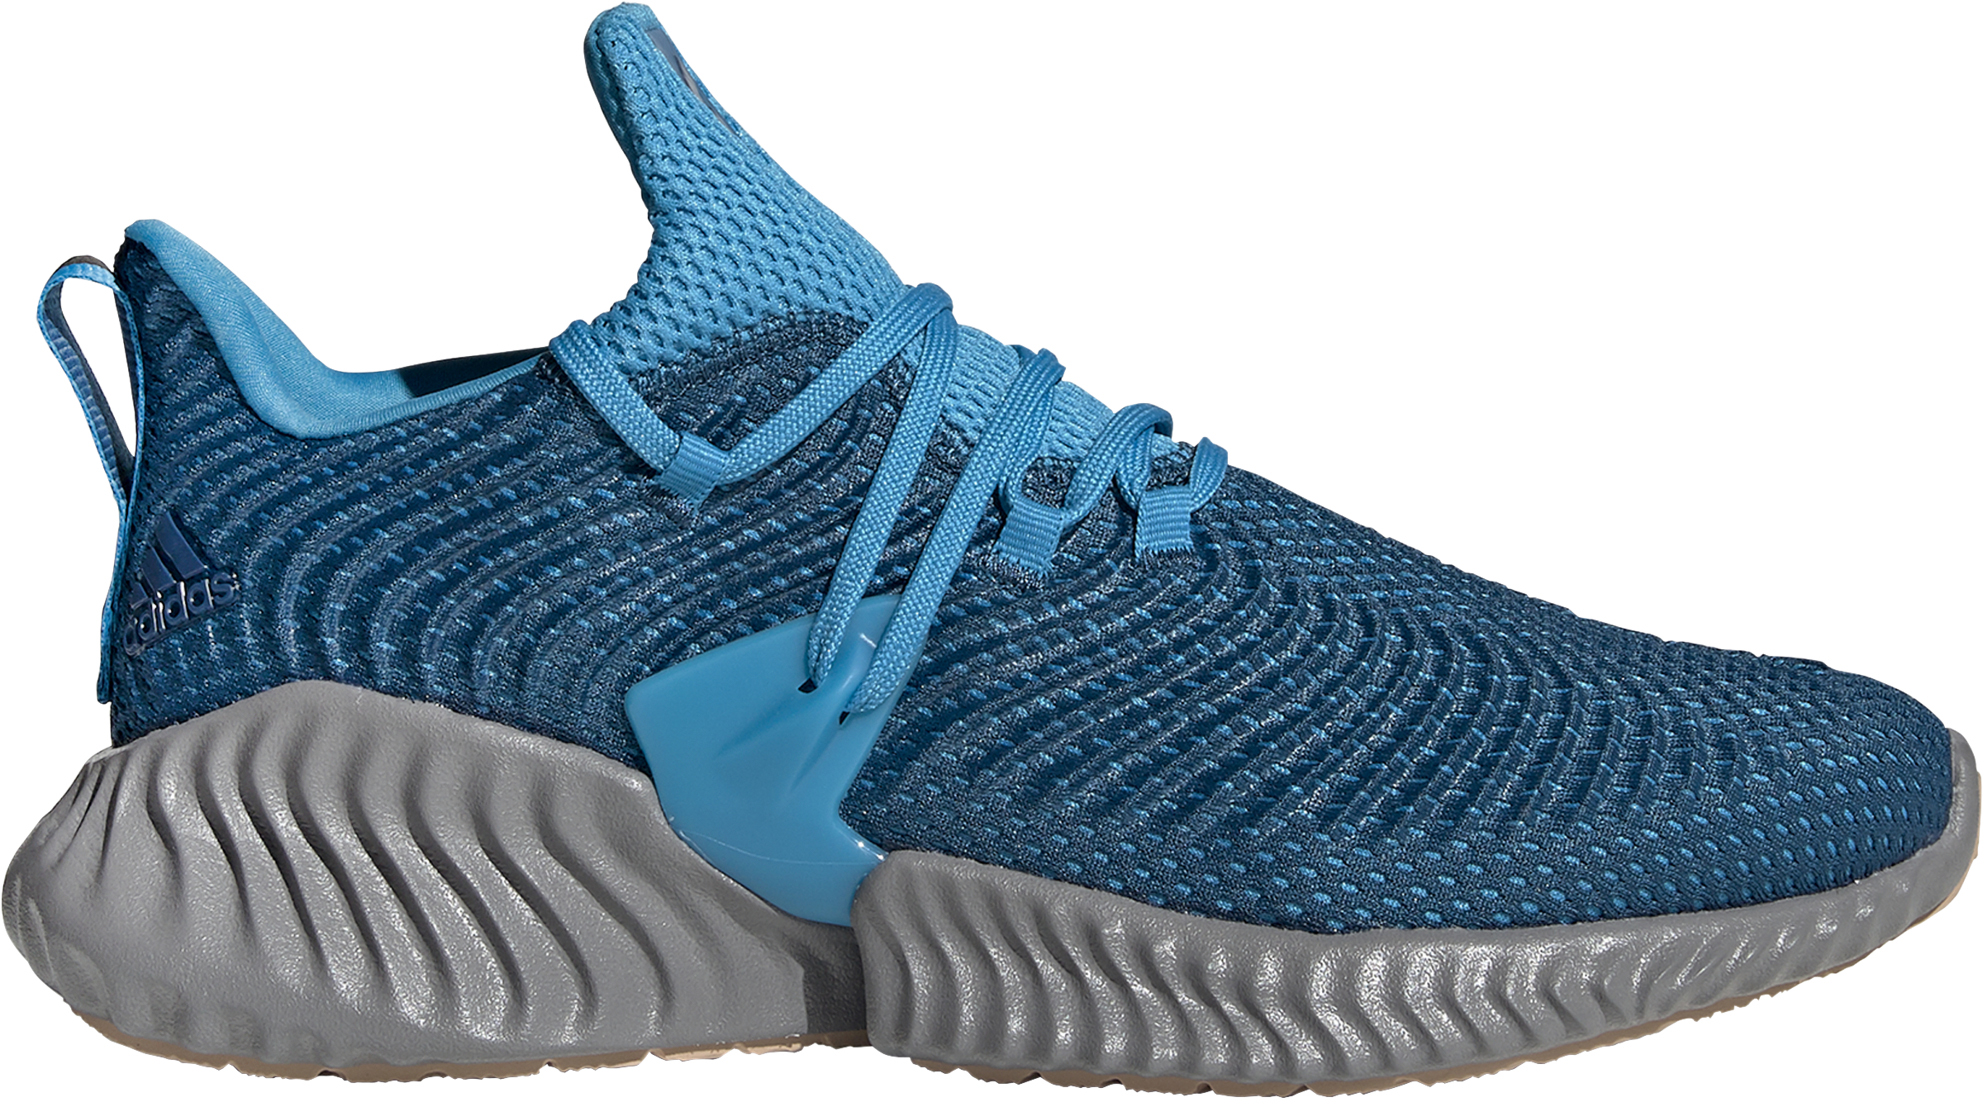 half off efea1 8402b wiggle.com  adidas Alphabounce Instinct  Running Shoes